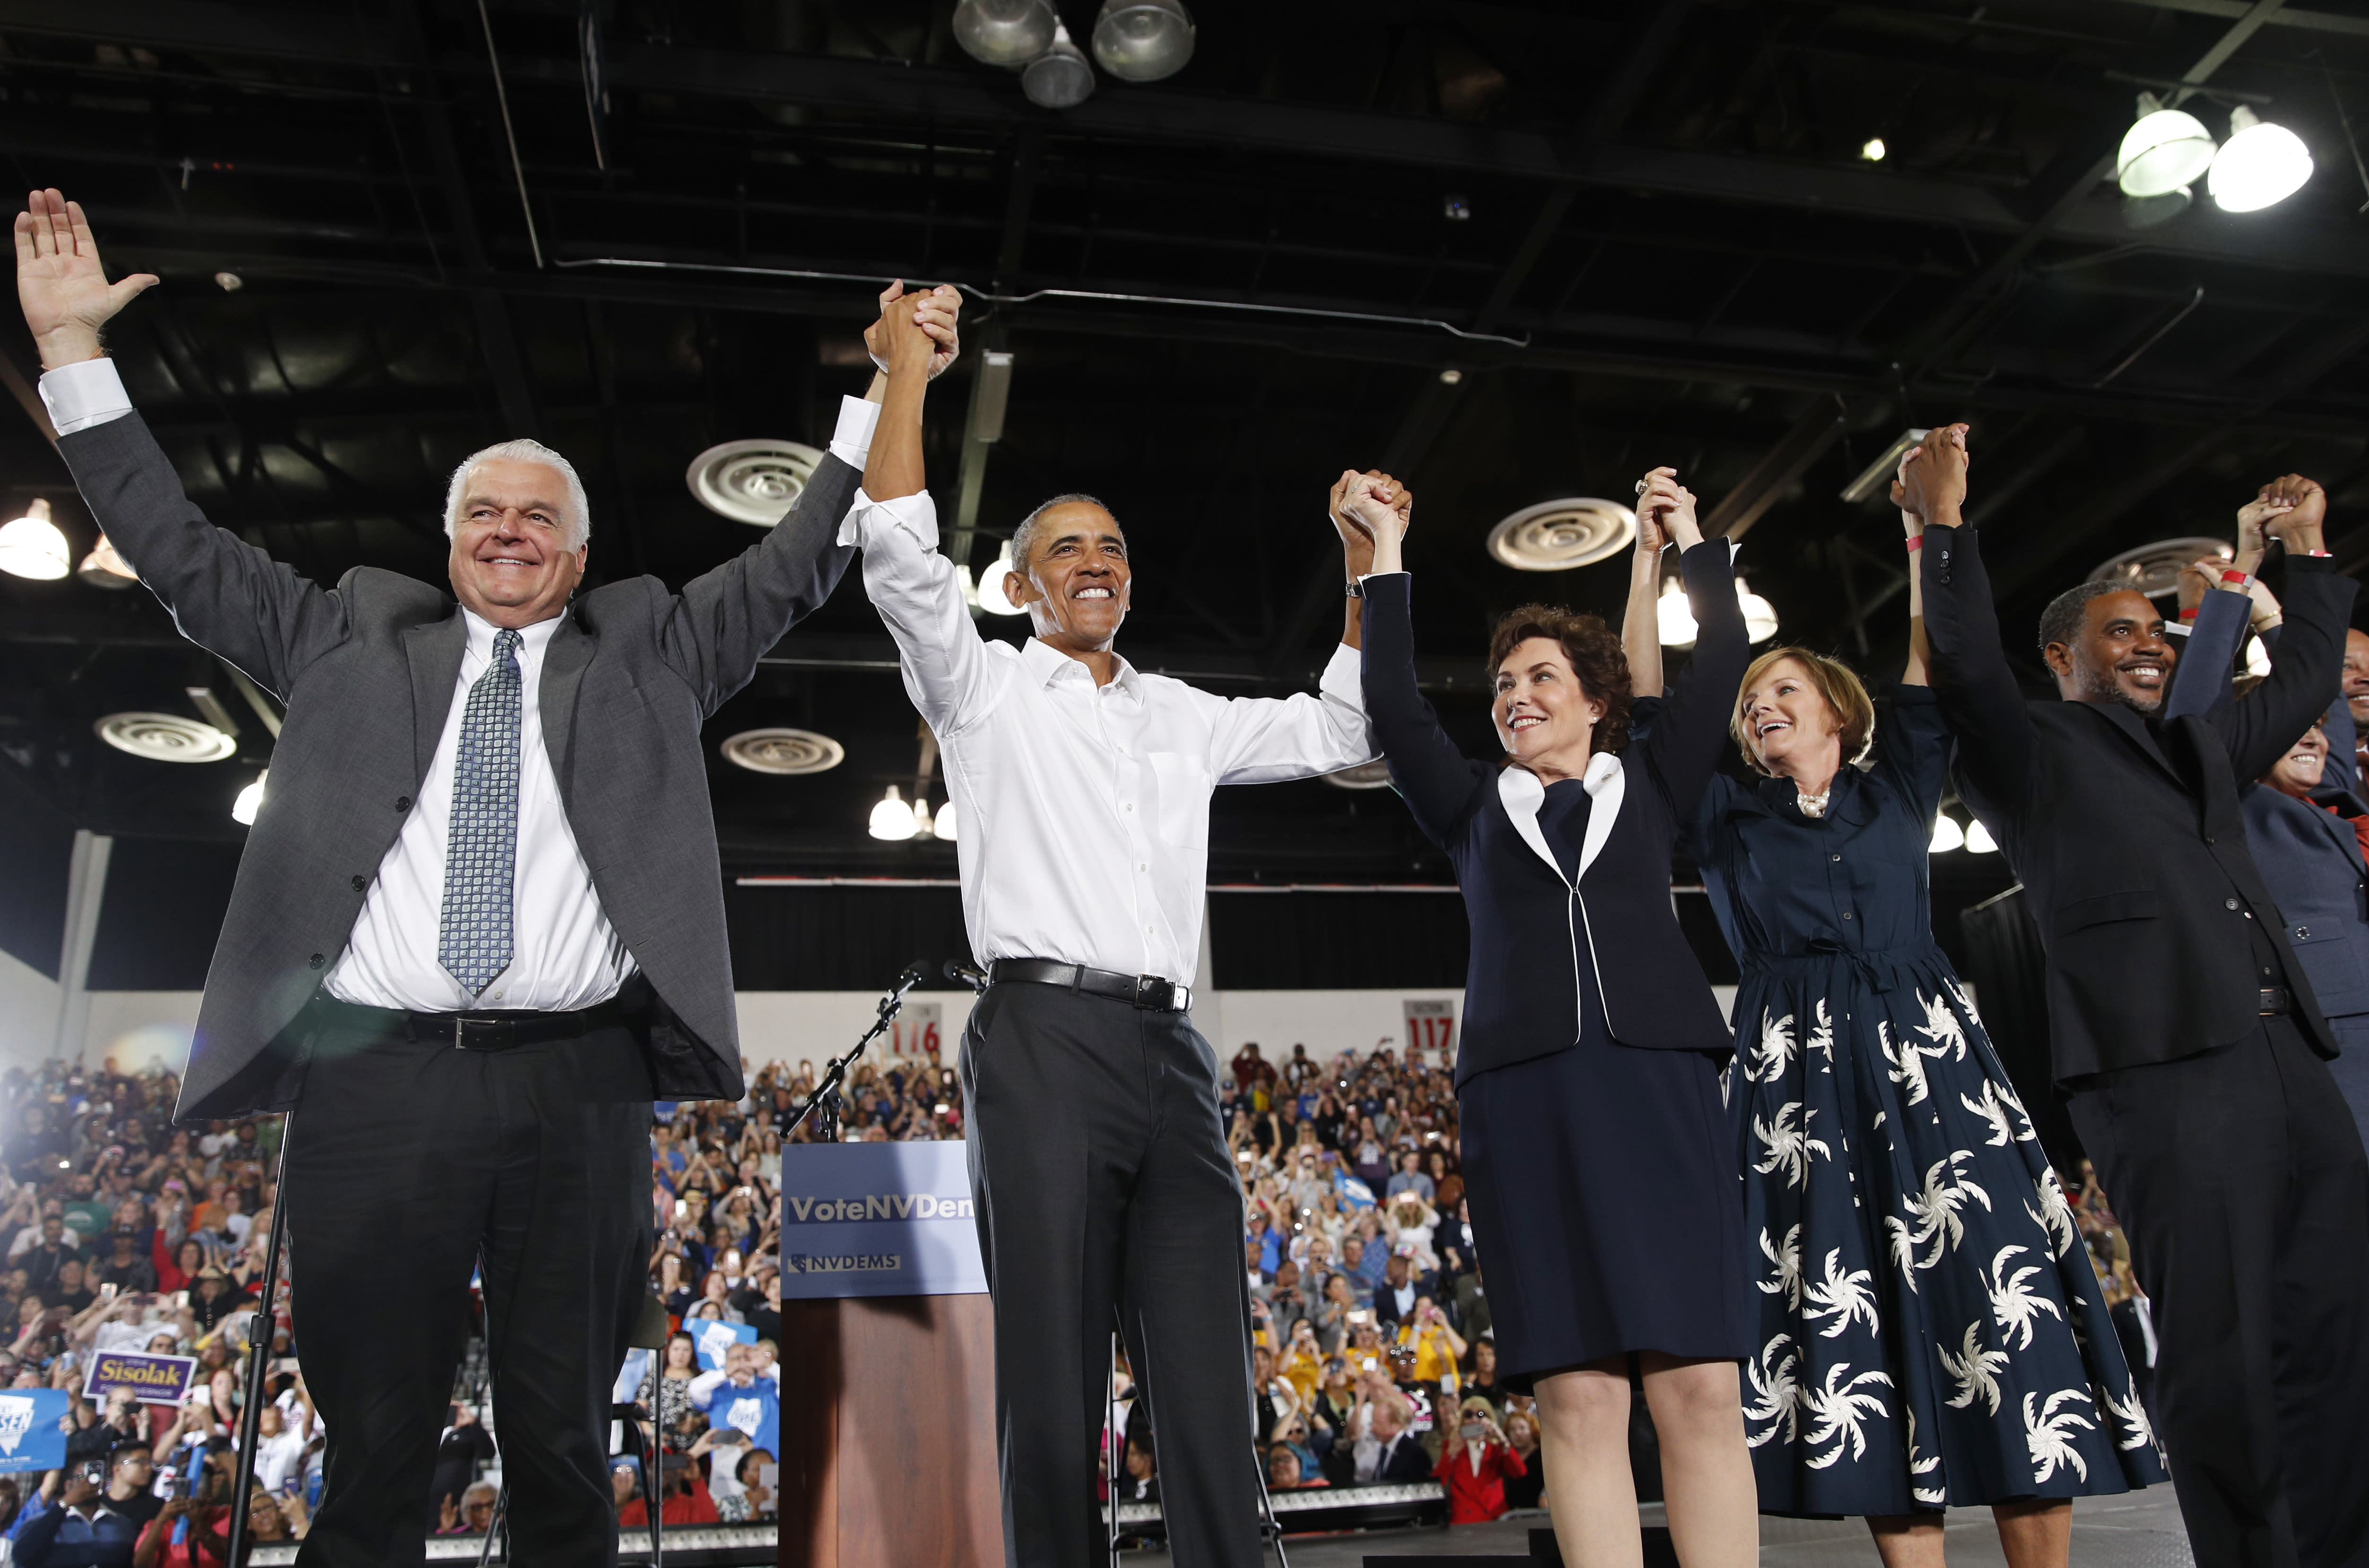 Former President Barack Obama, second from left, cheers at a rally in support of Clark County Commission Chair and Democratic gubernatorial candidate Steve Sisolak, left, candidate for Senate Jacky Rosen, third from left, Susie Lee, Democratic candidate for Nevada's third congressional district, second from right, Steven Horsford, candidate for Nevada's fourth congressional district, right, and other Nevada Democrats, Monday, Oct. 22, 2018, in Las Vegas. (AP Photo/John Locher)